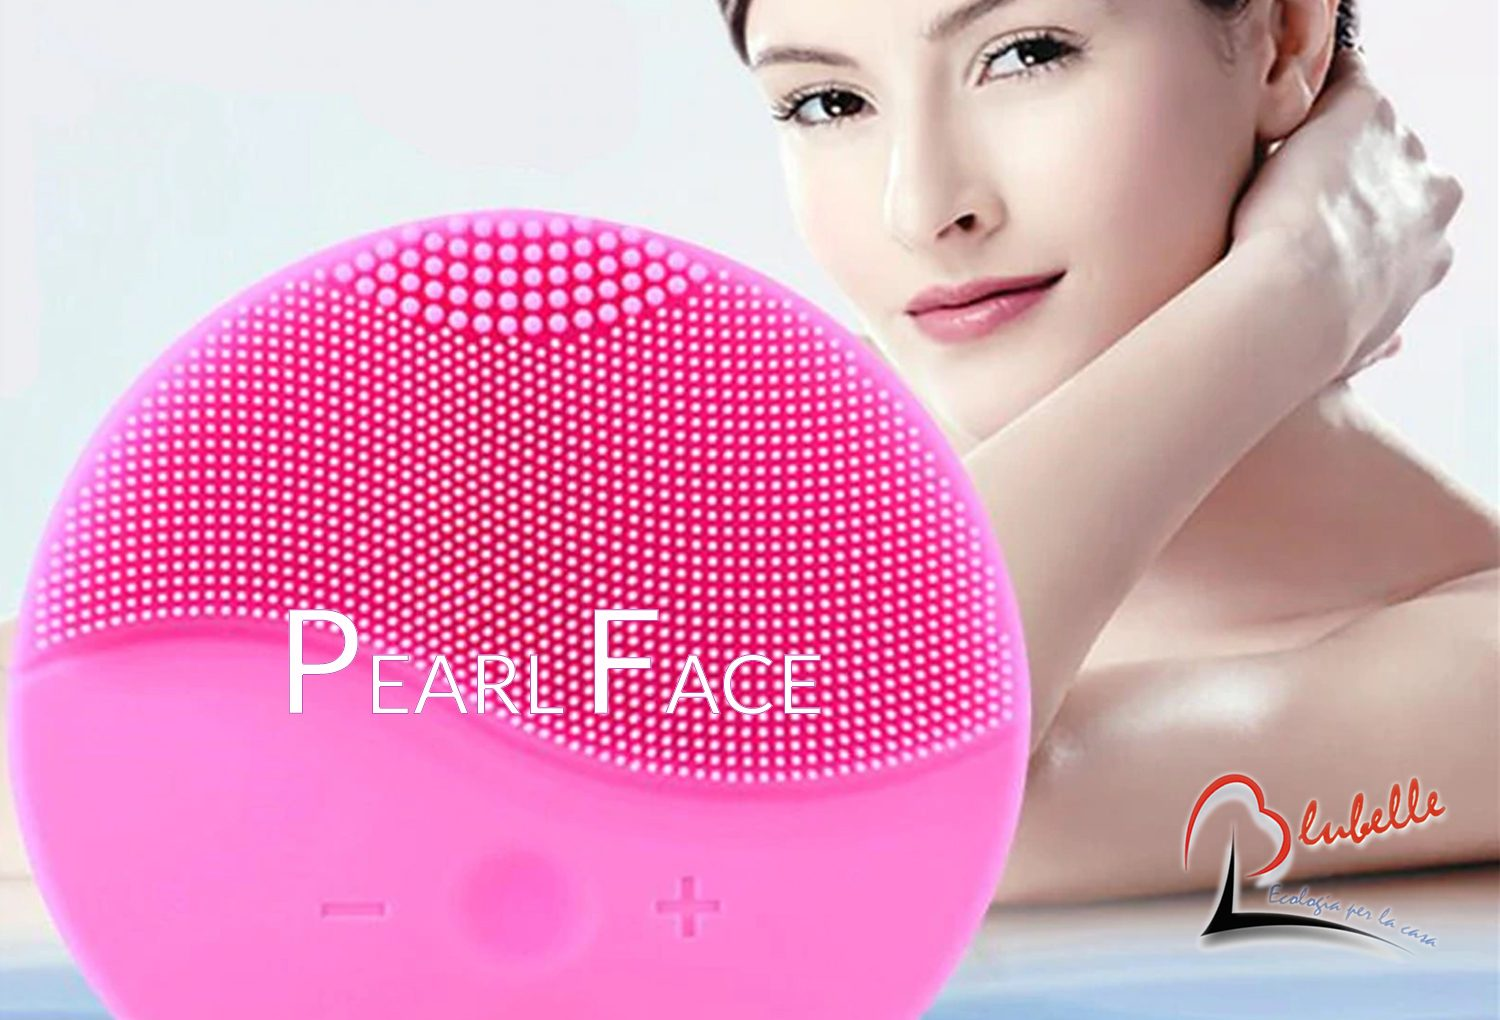 PEARL FACE HOME